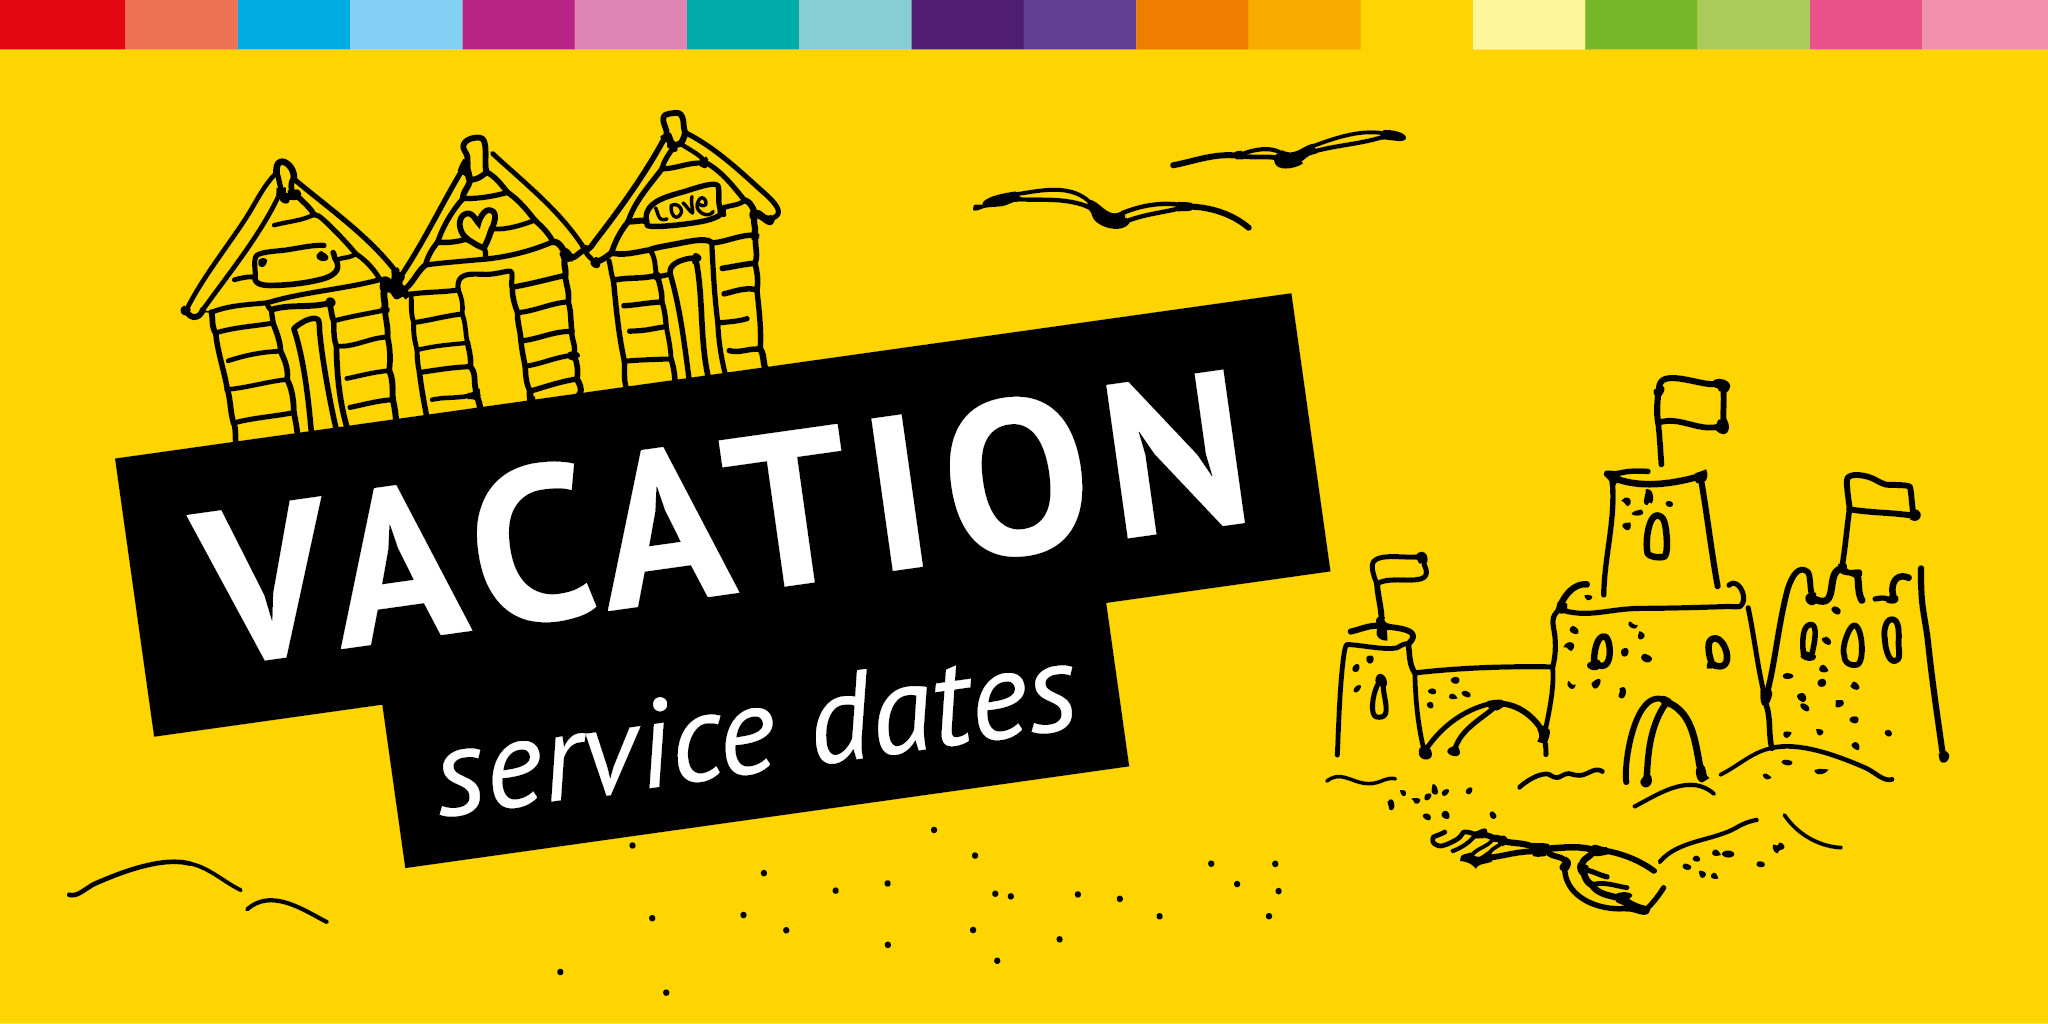 Image of a sandcastle and beach huts reading 'vacation service dates'